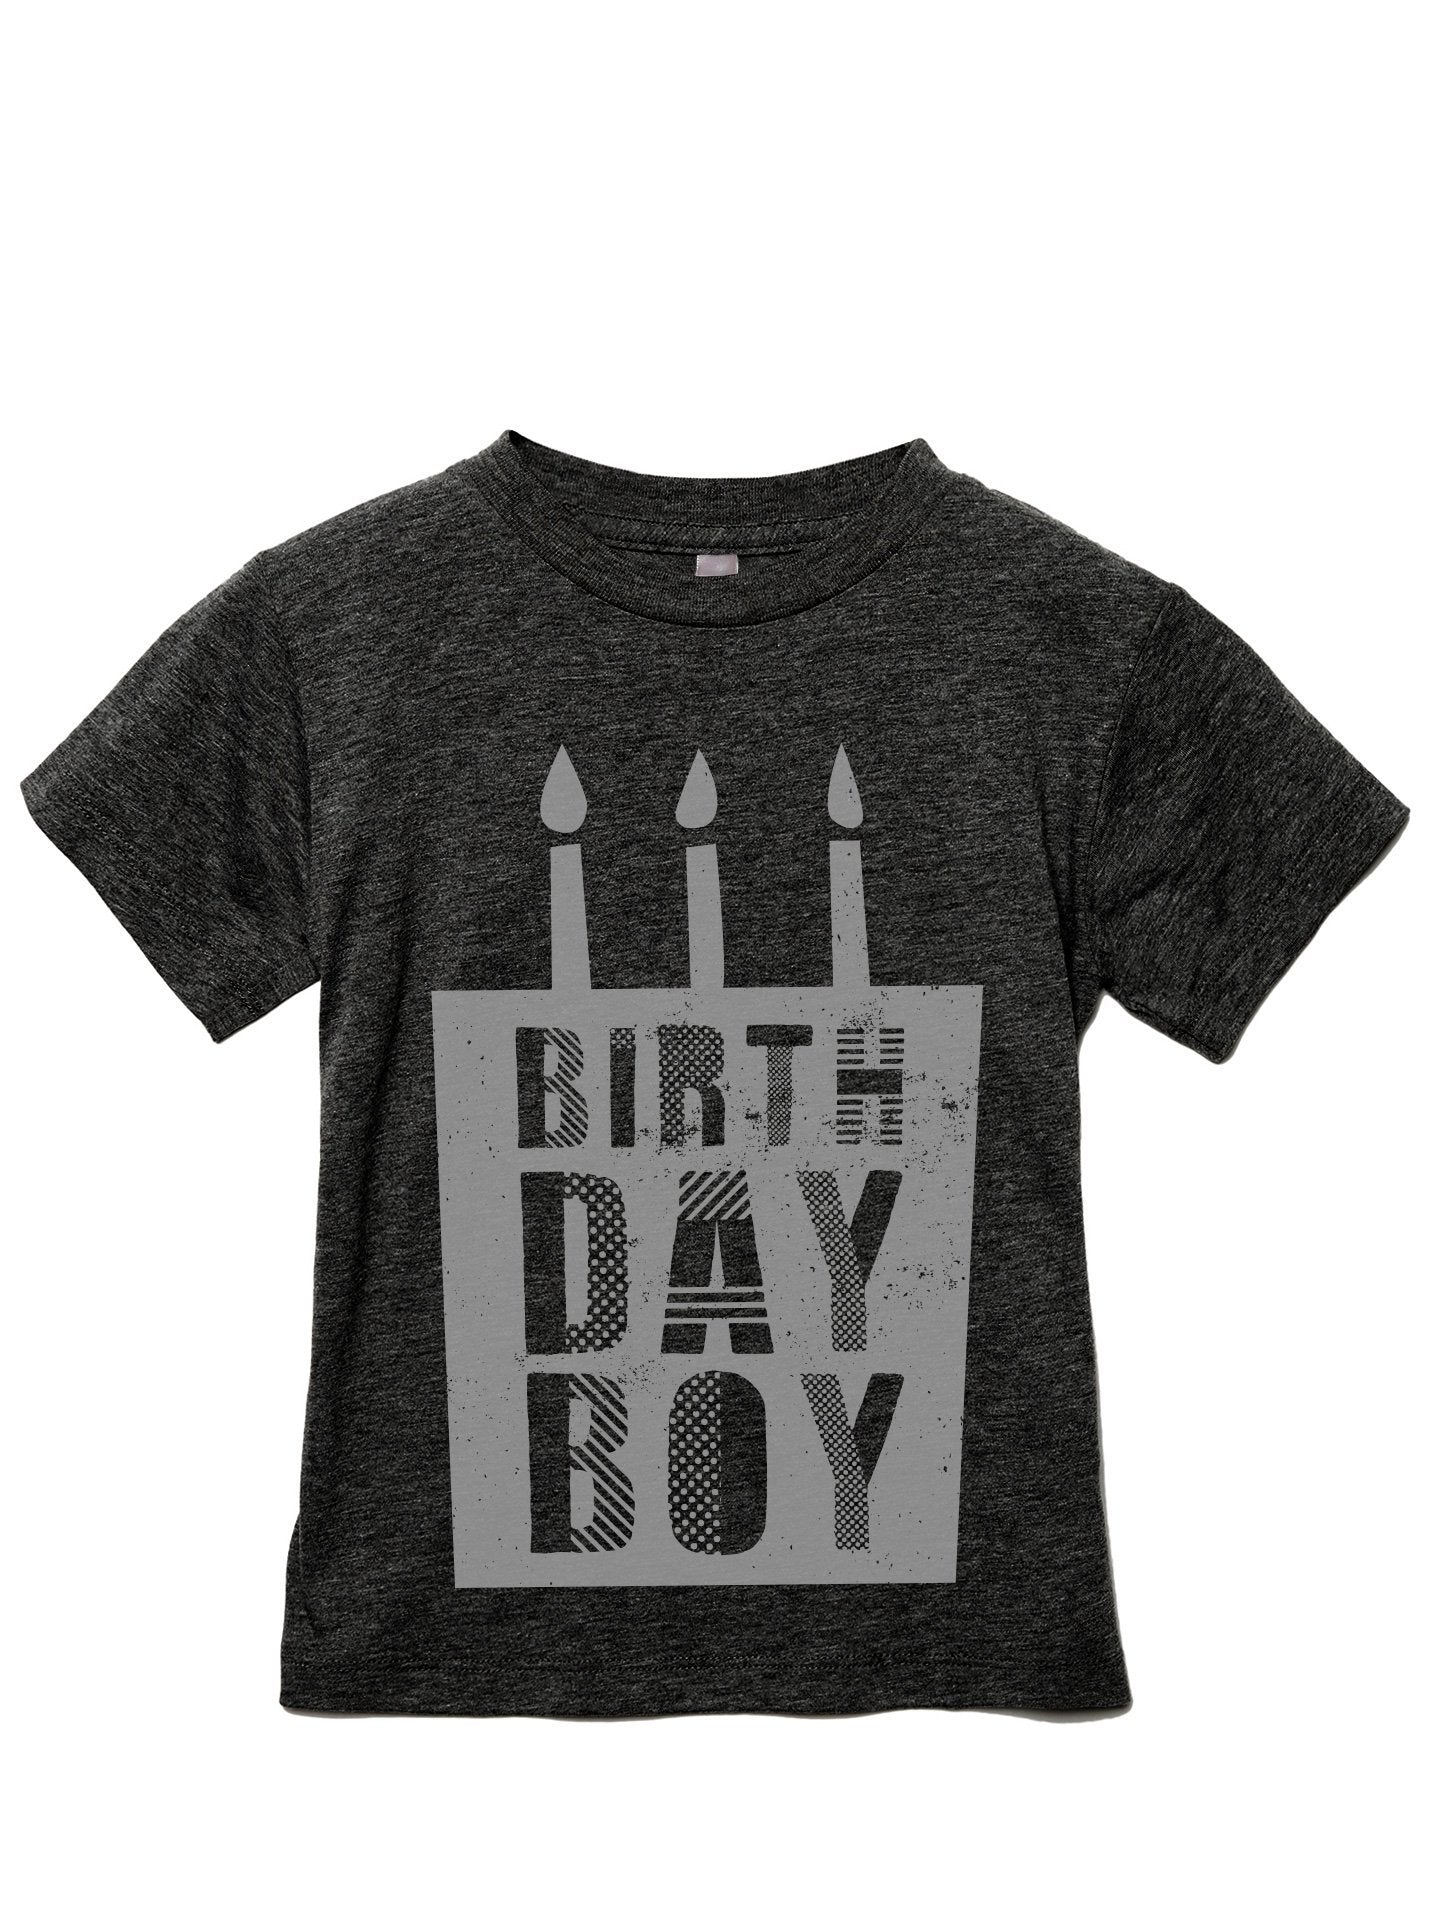 Birthday Boy Toddler's Go-To Crewneck Tee Charcoal